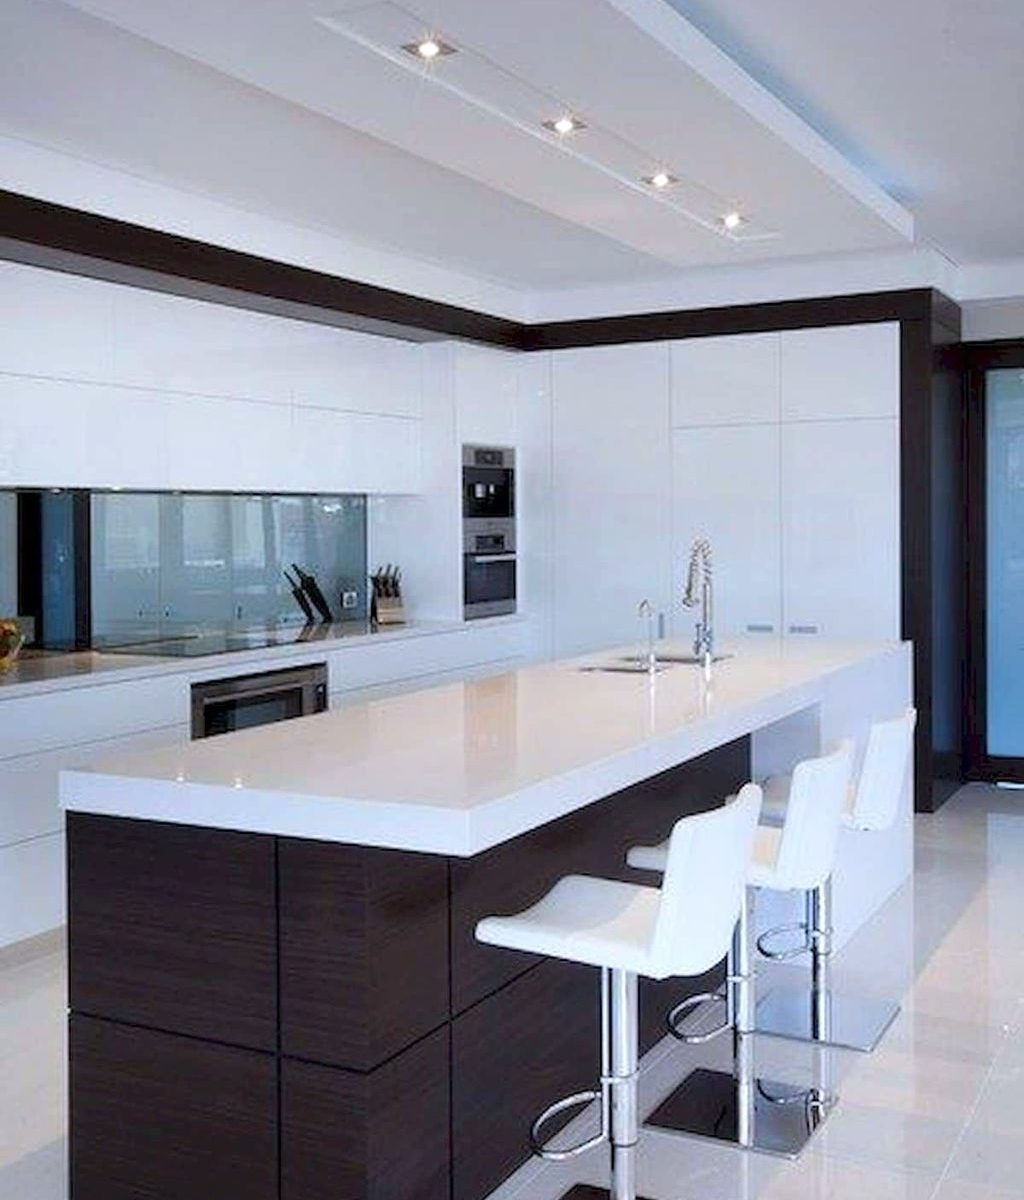 Admirable Luxury Kitchen Design Ideas You Will Love 03